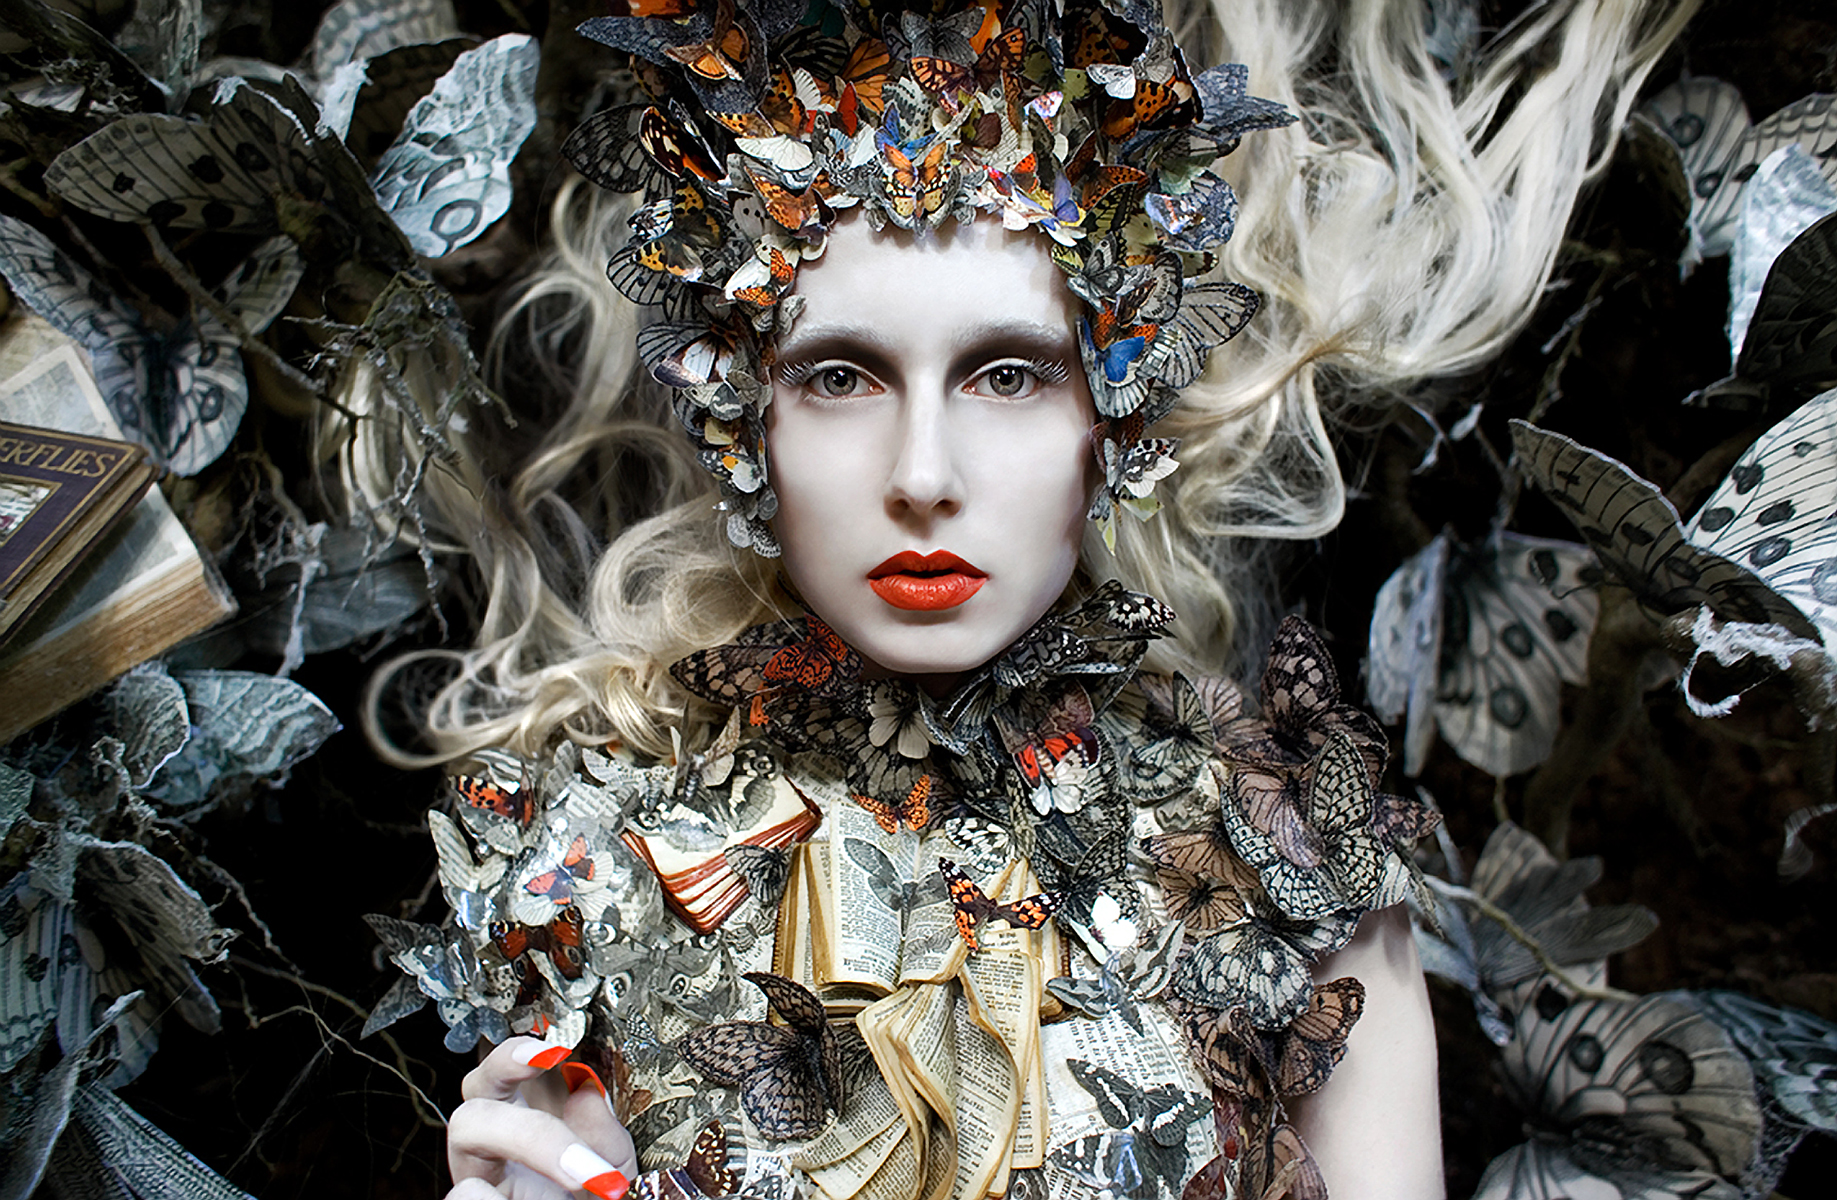 Kirsty Mitchell - Daria Shipovskikh (Profile Models) - hair:makeup Elbie van Eeden - stylist:wardrobe:props by photographer - assistans Laura Sawyer and Matthew Stevensen